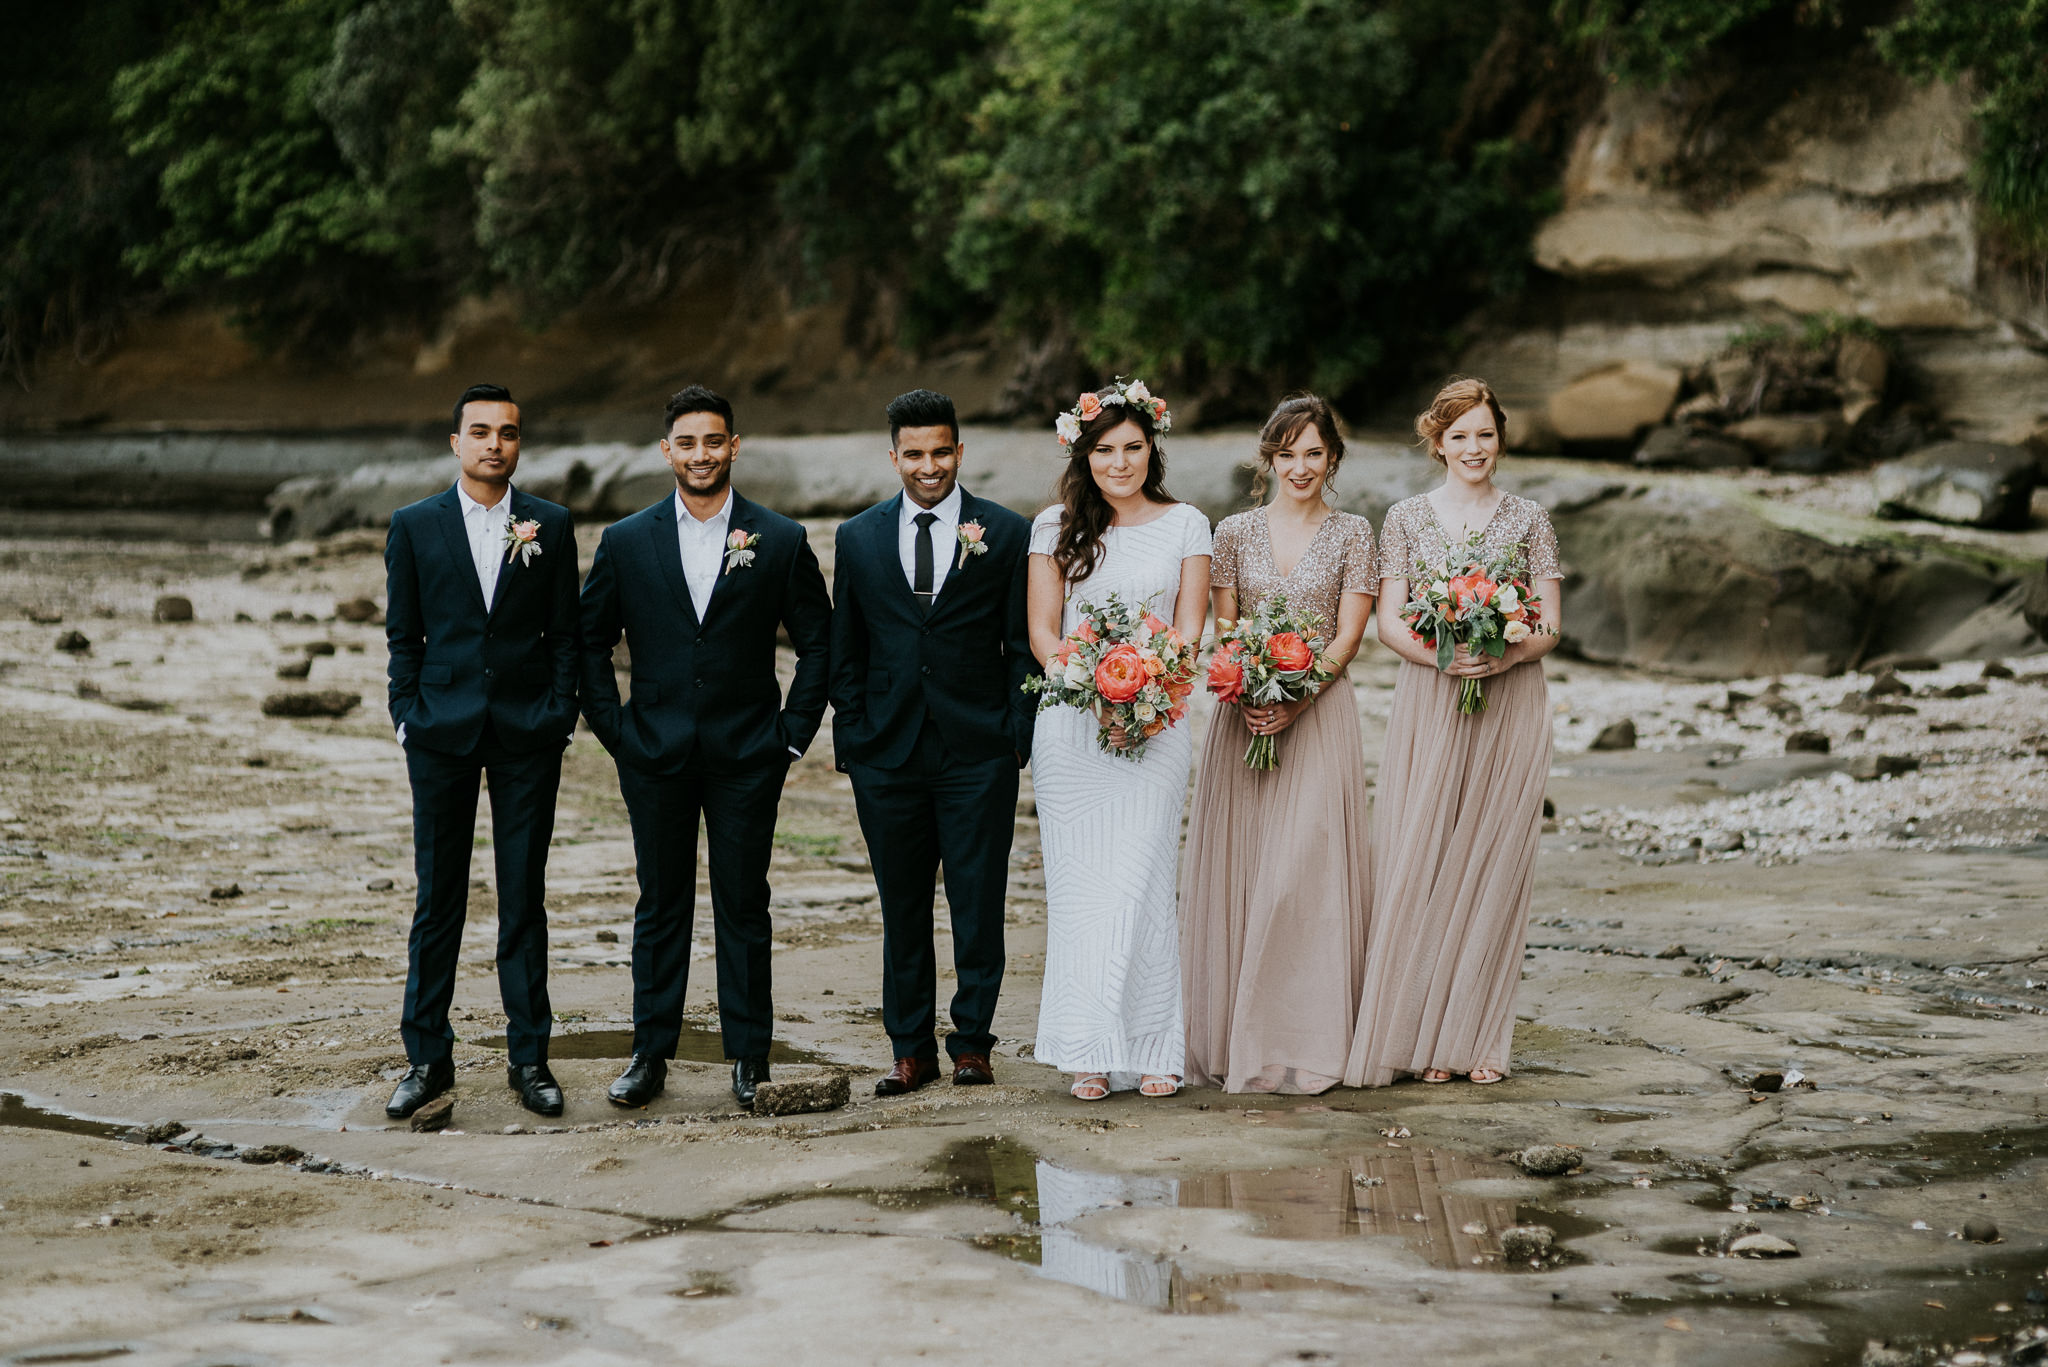 Bridal Party Photo at French Bay Yacht Club Titirangi